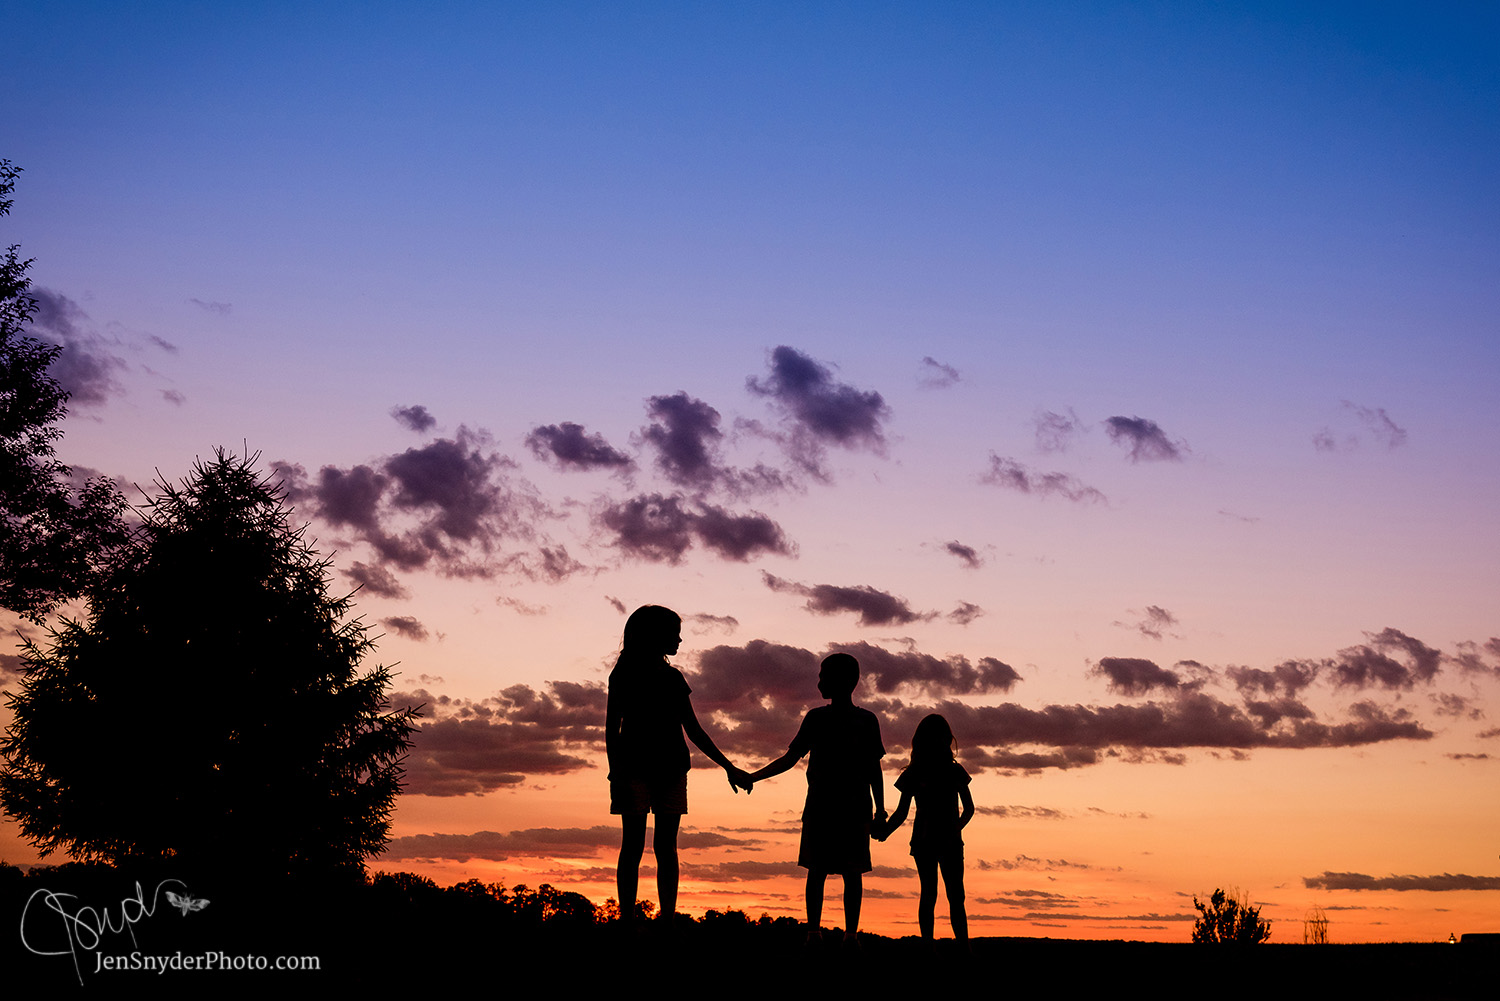 silhouette of 3 kids in the sunset, by jen snyder